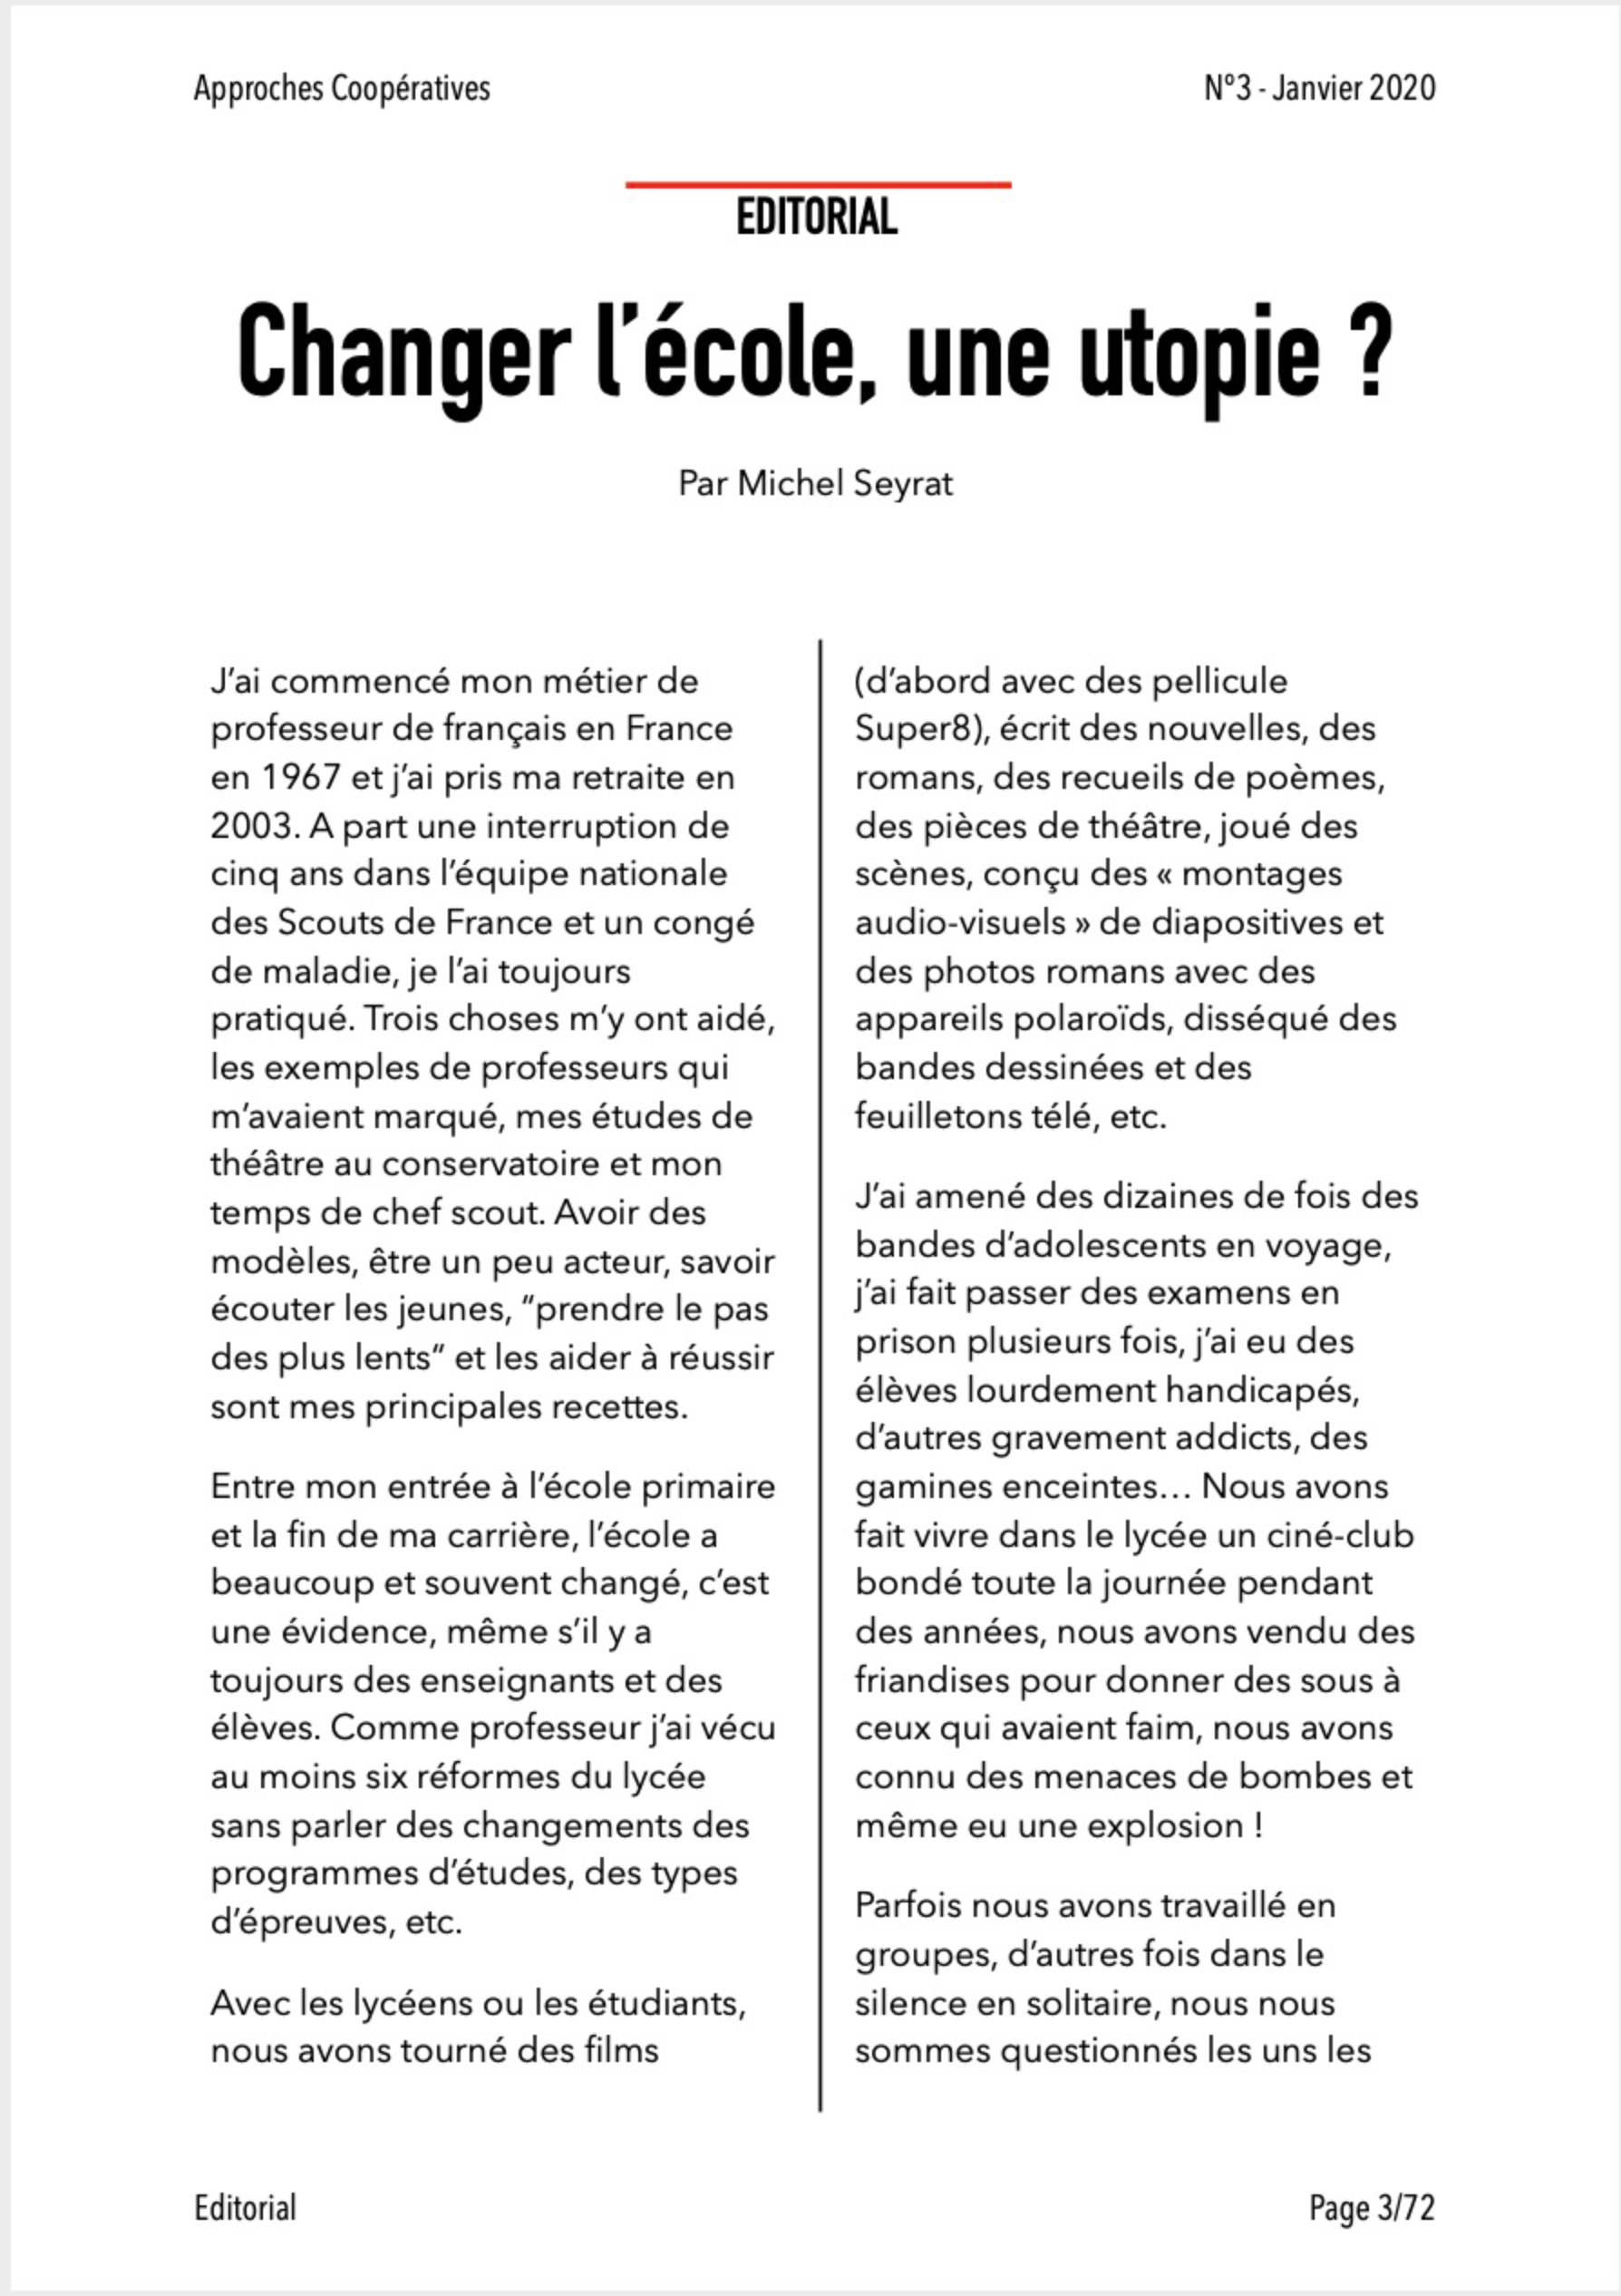 Approches Coopératives #3